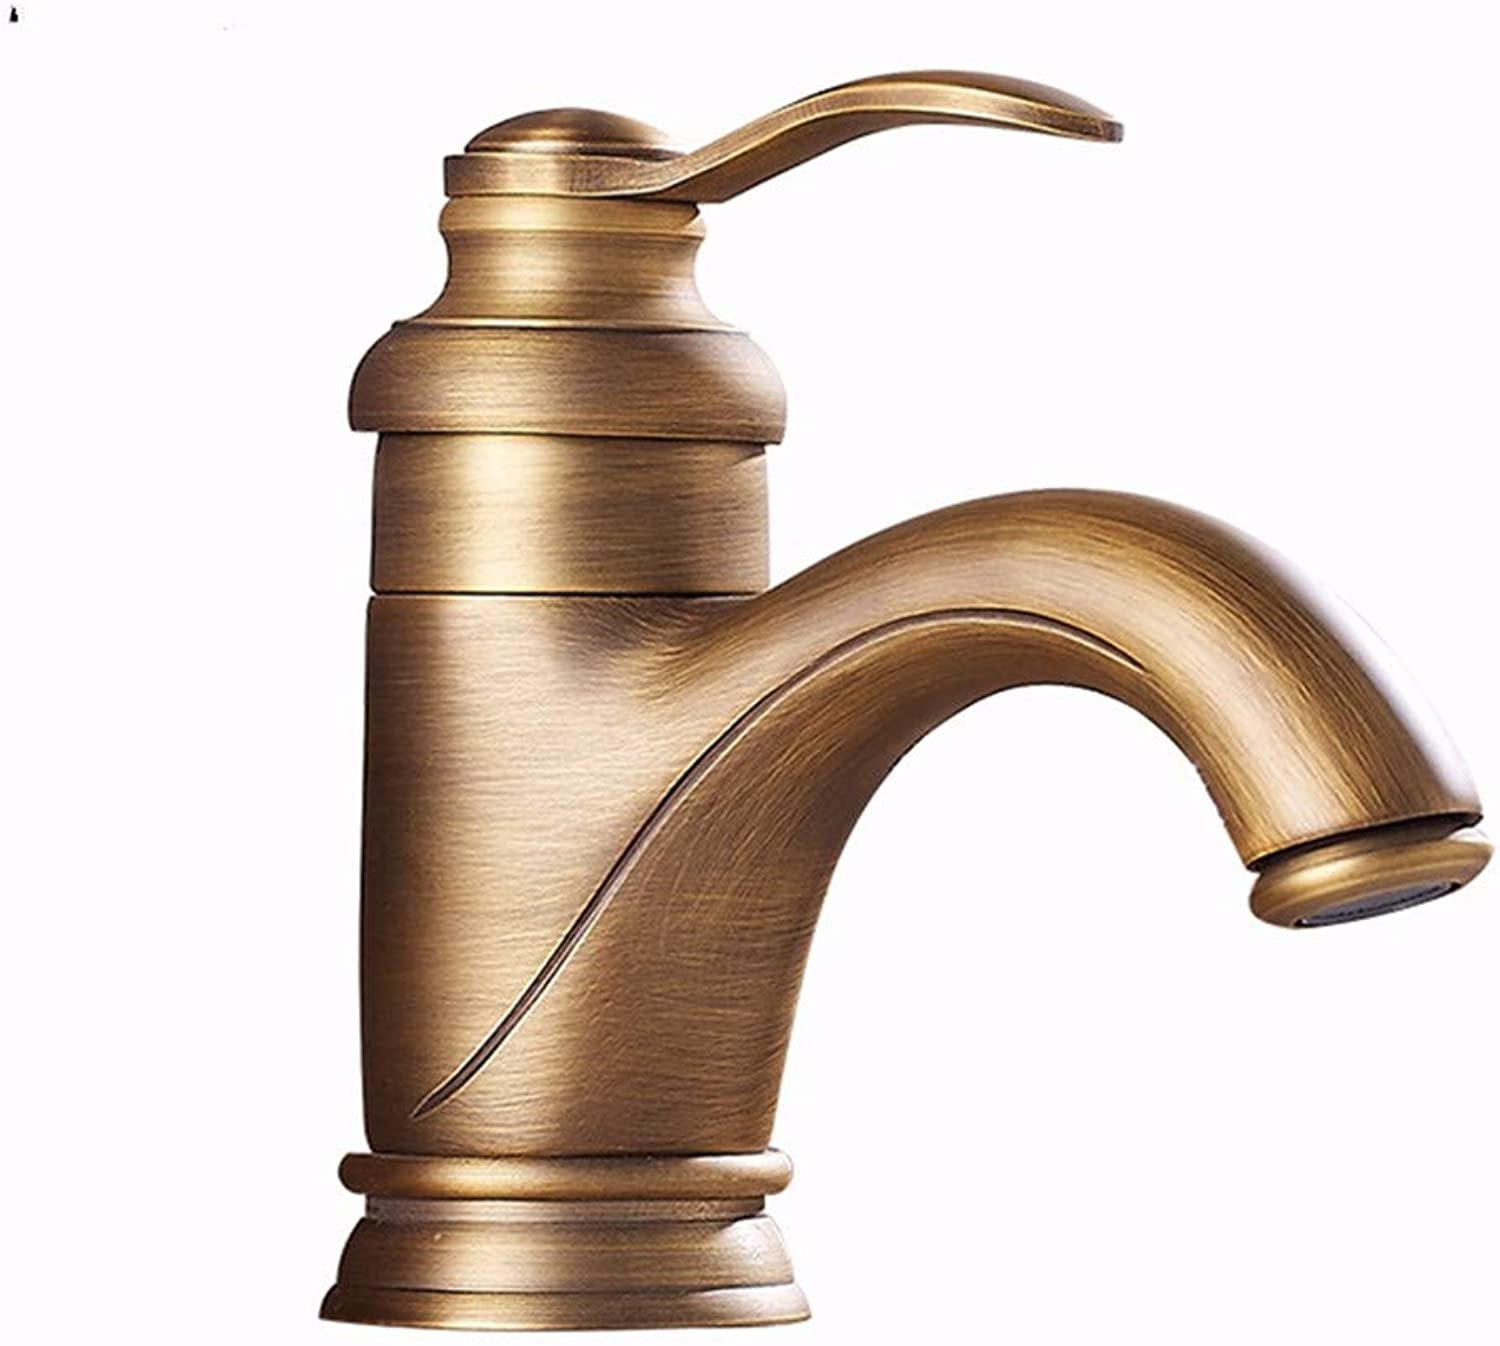 GiiWii Bathroom Faucet Retro Copper Metal for Washbasin Hot and Cold Water Mixture,golden Short